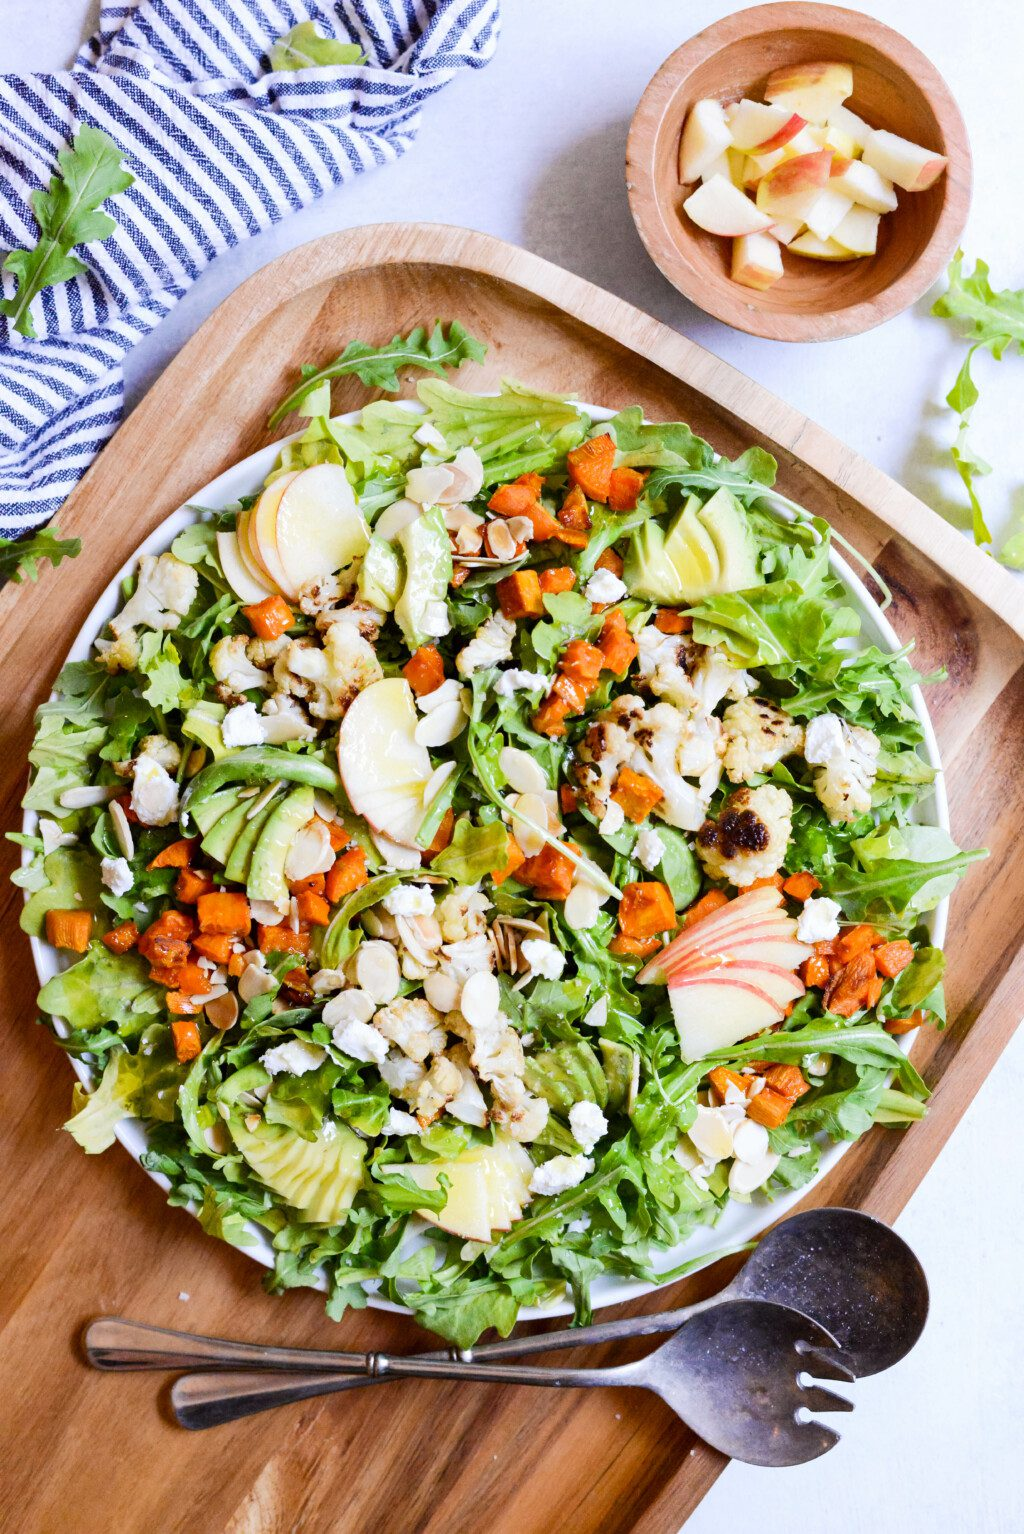 fall harvest salad on top of wood cutting board with striped napkin